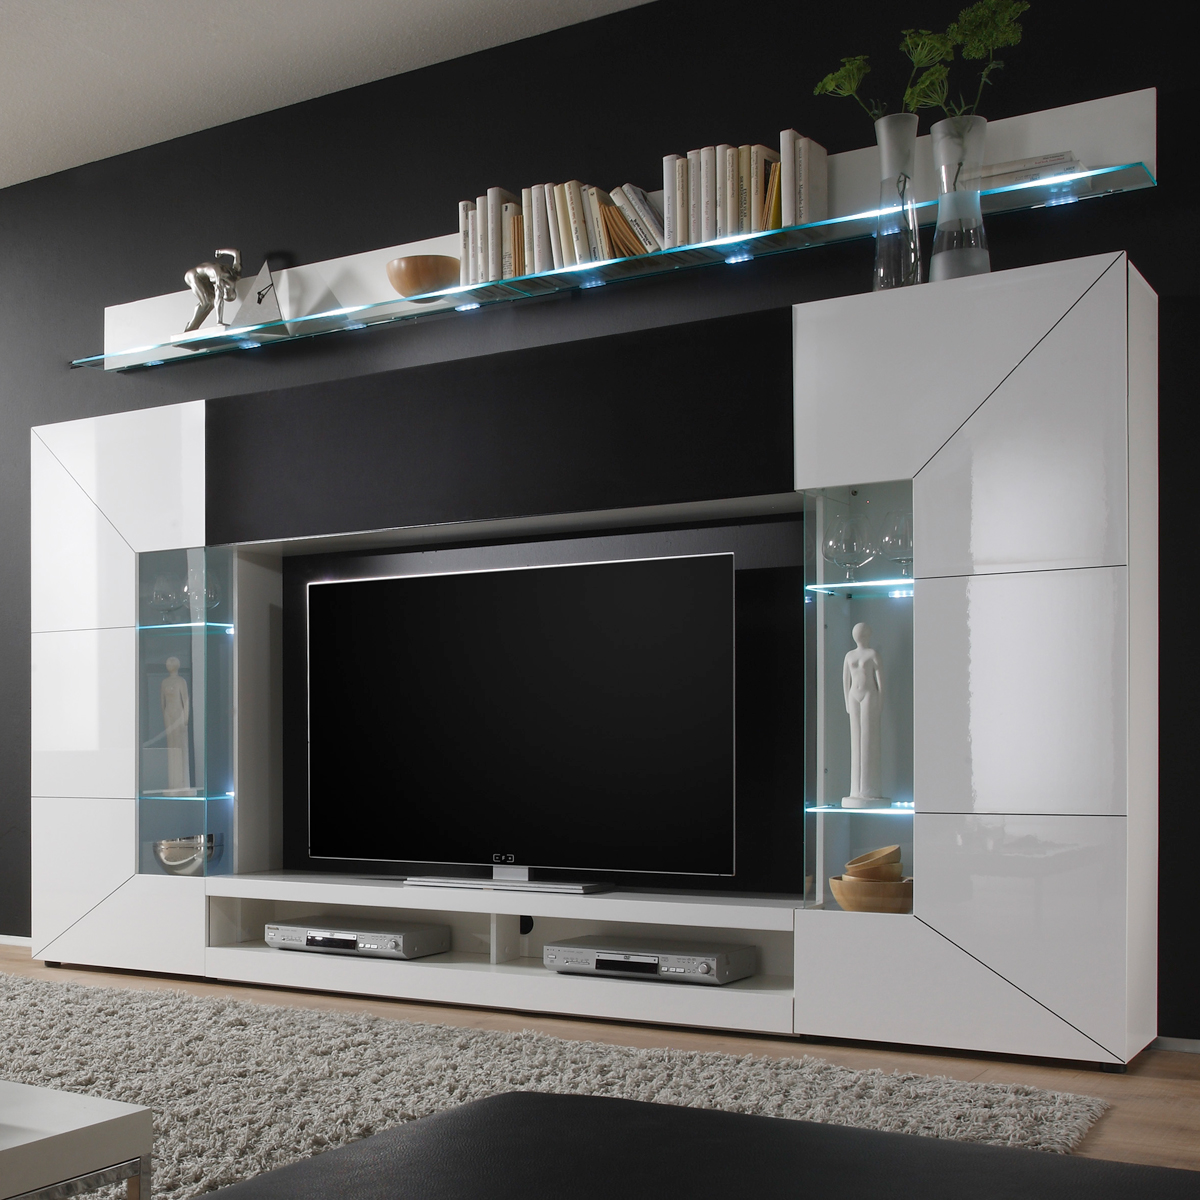 details zu media wand wohnwand tv wand wei hochglanz neu pictures to pin on pinterest. Black Bedroom Furniture Sets. Home Design Ideas